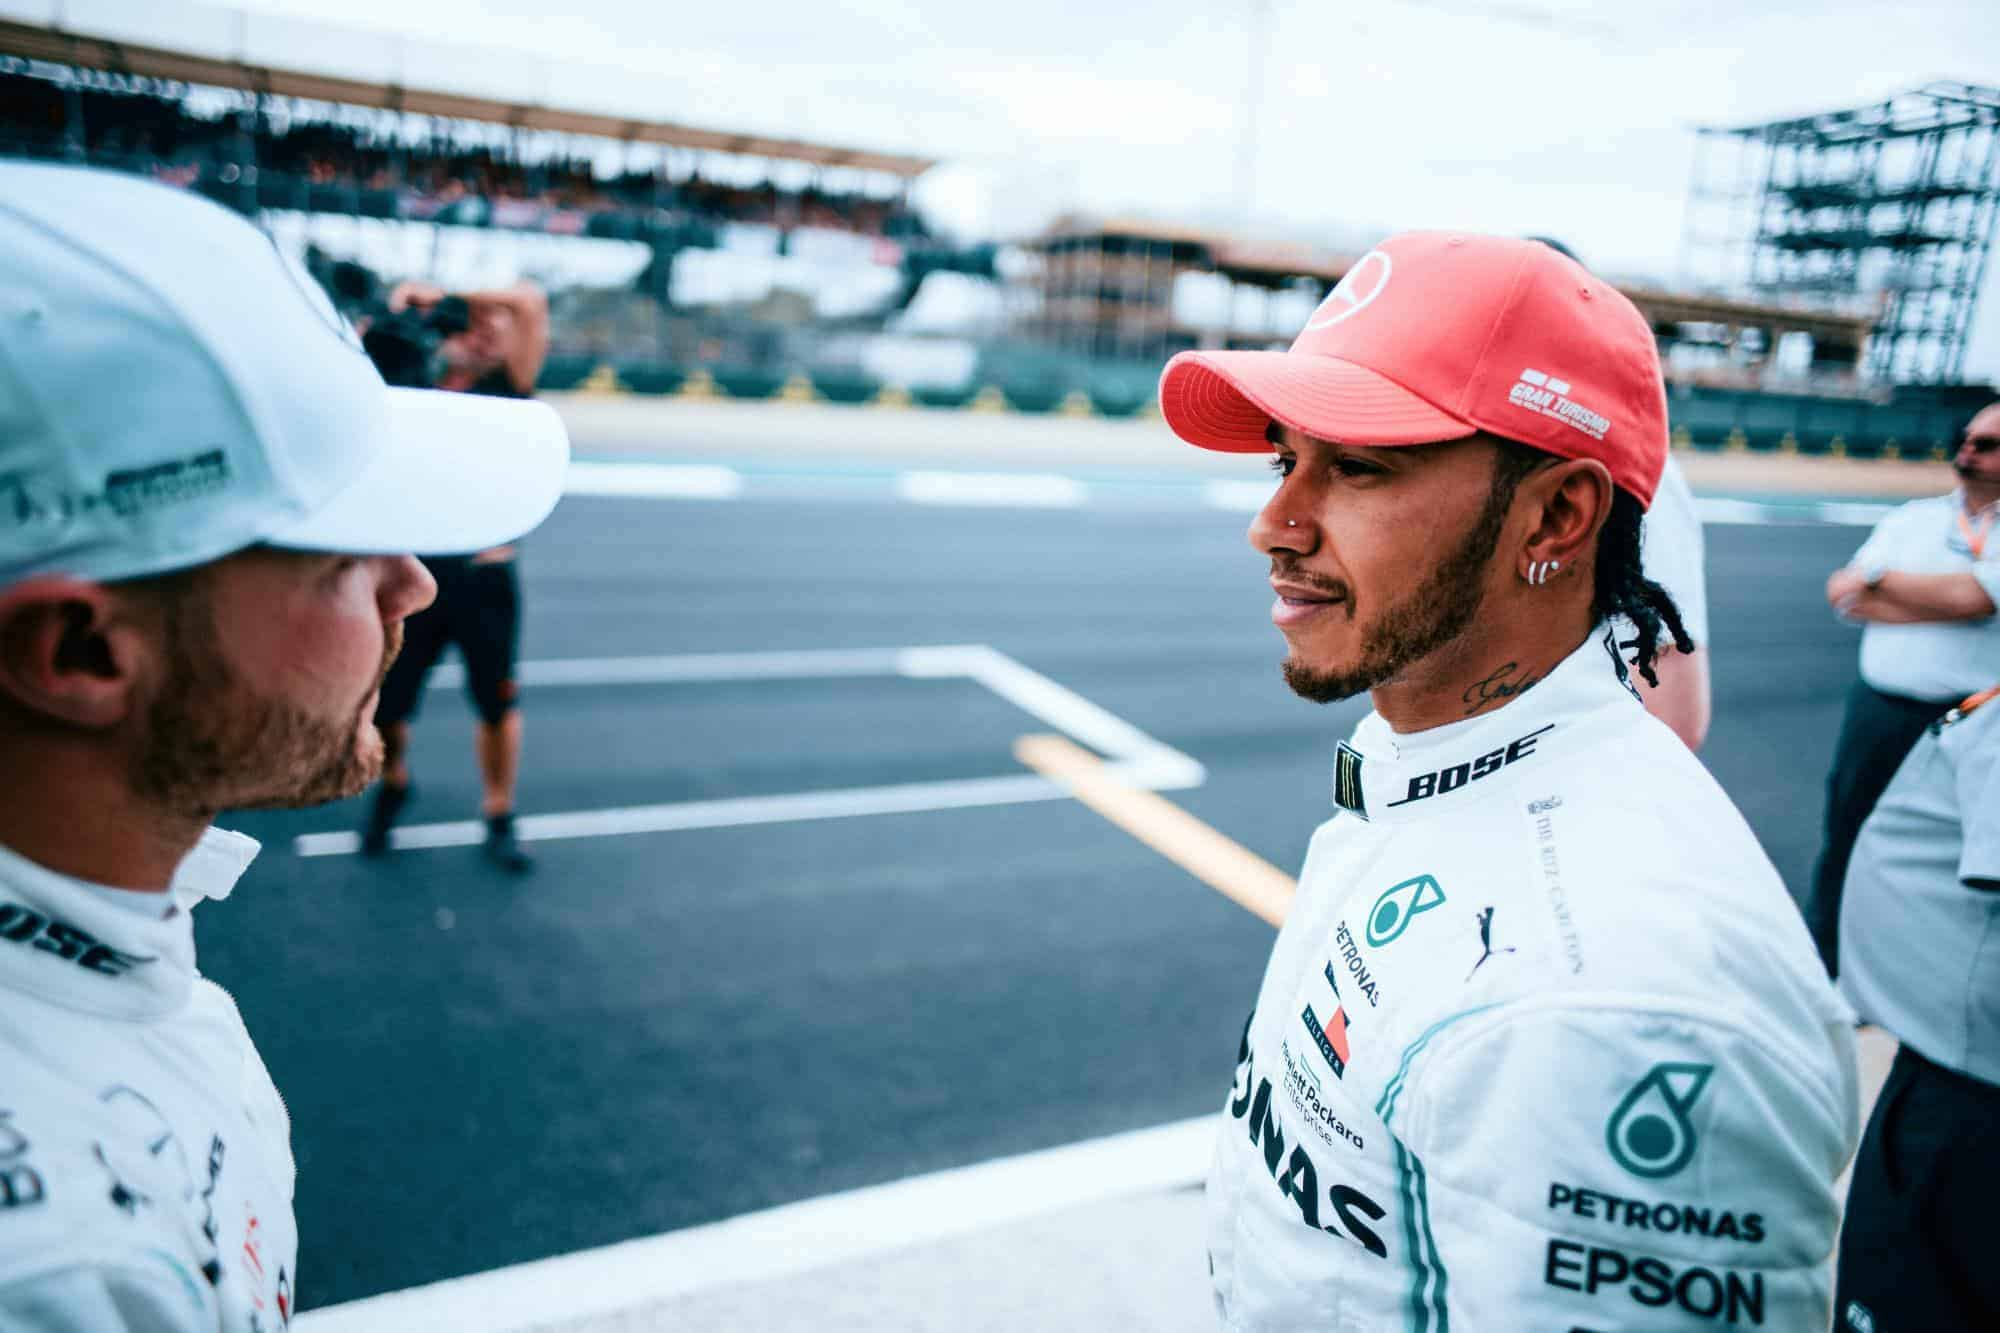 Bottas and Hamilton Mercedes British GP F1 2019 post qualifying on track out of cars Photo Daimler